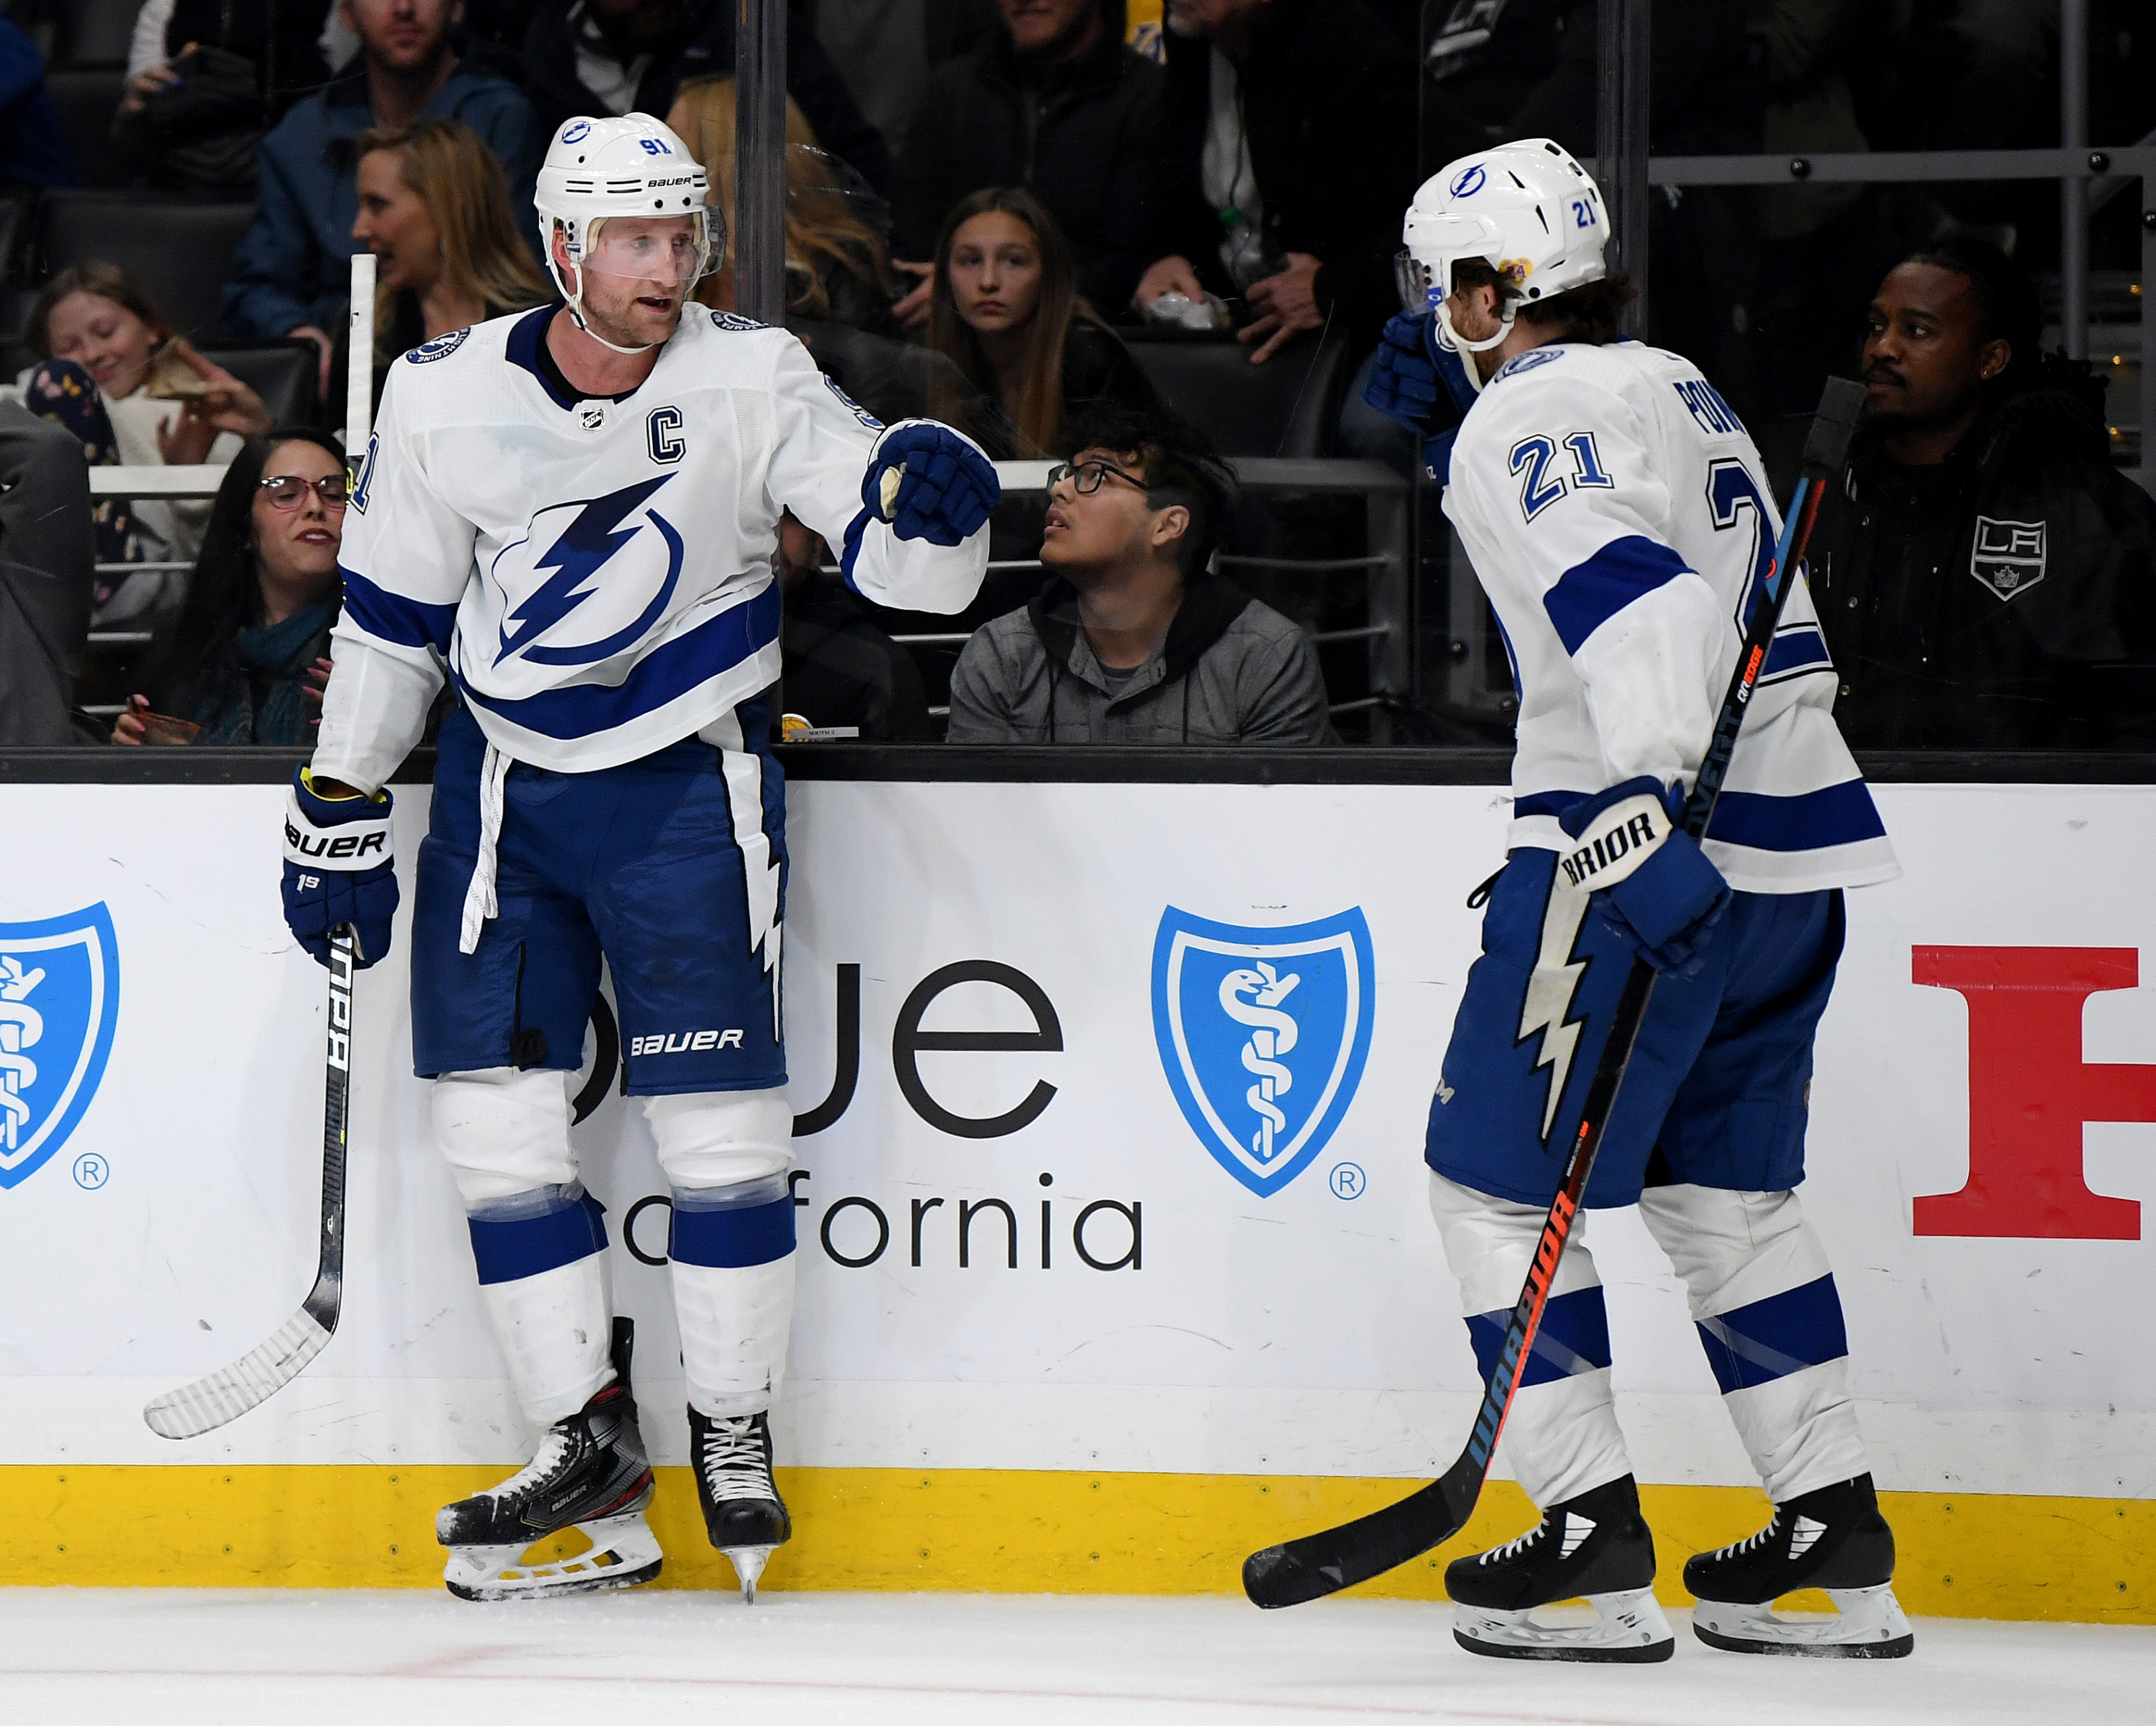 Vegas Golden Knights Vs. Tampa Bay Lightning Storylines